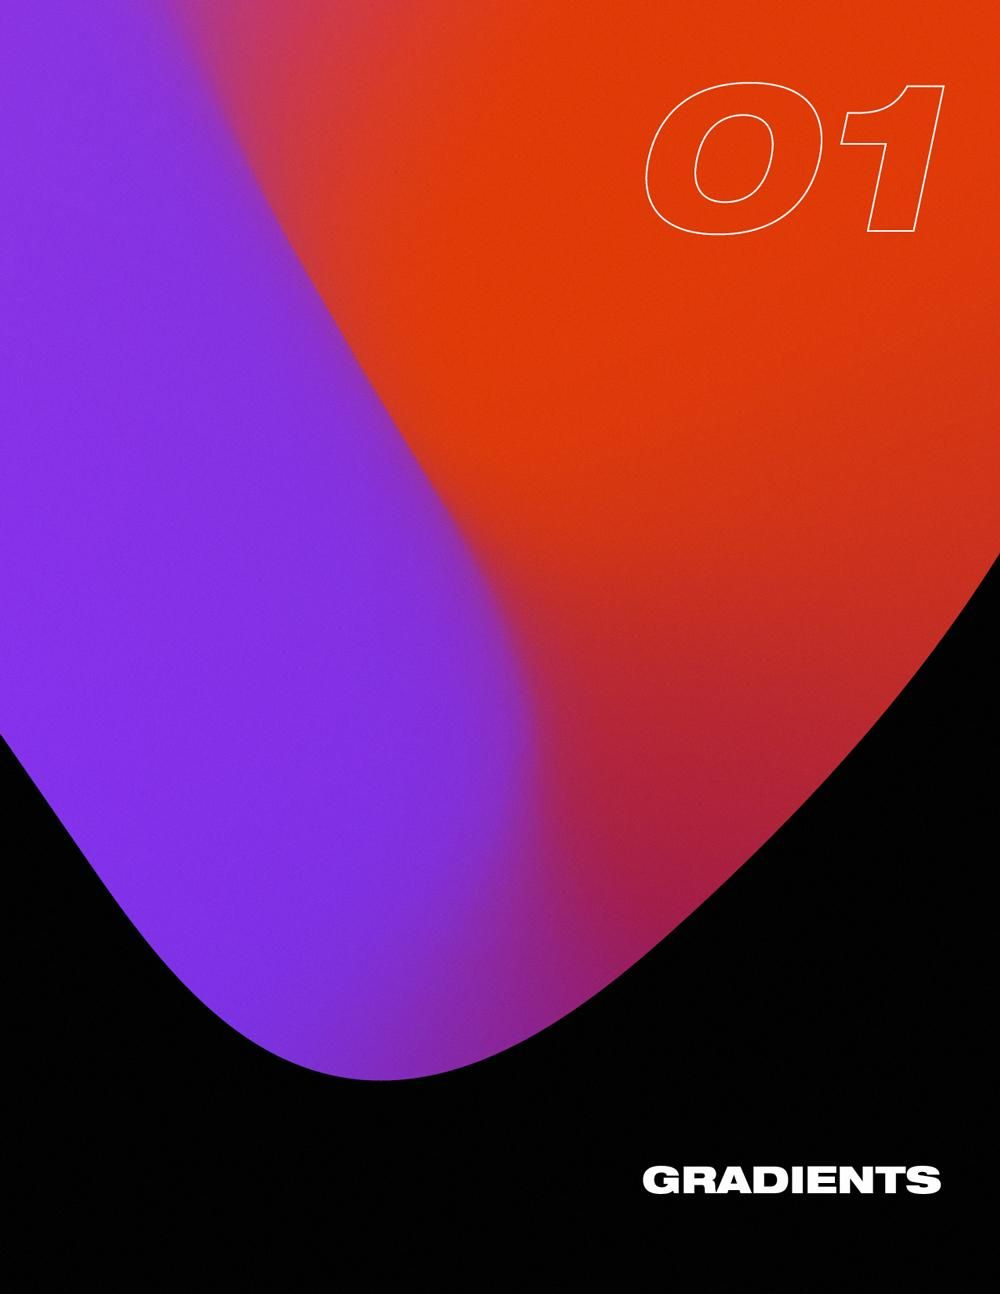 Gradients - image 1 - student project